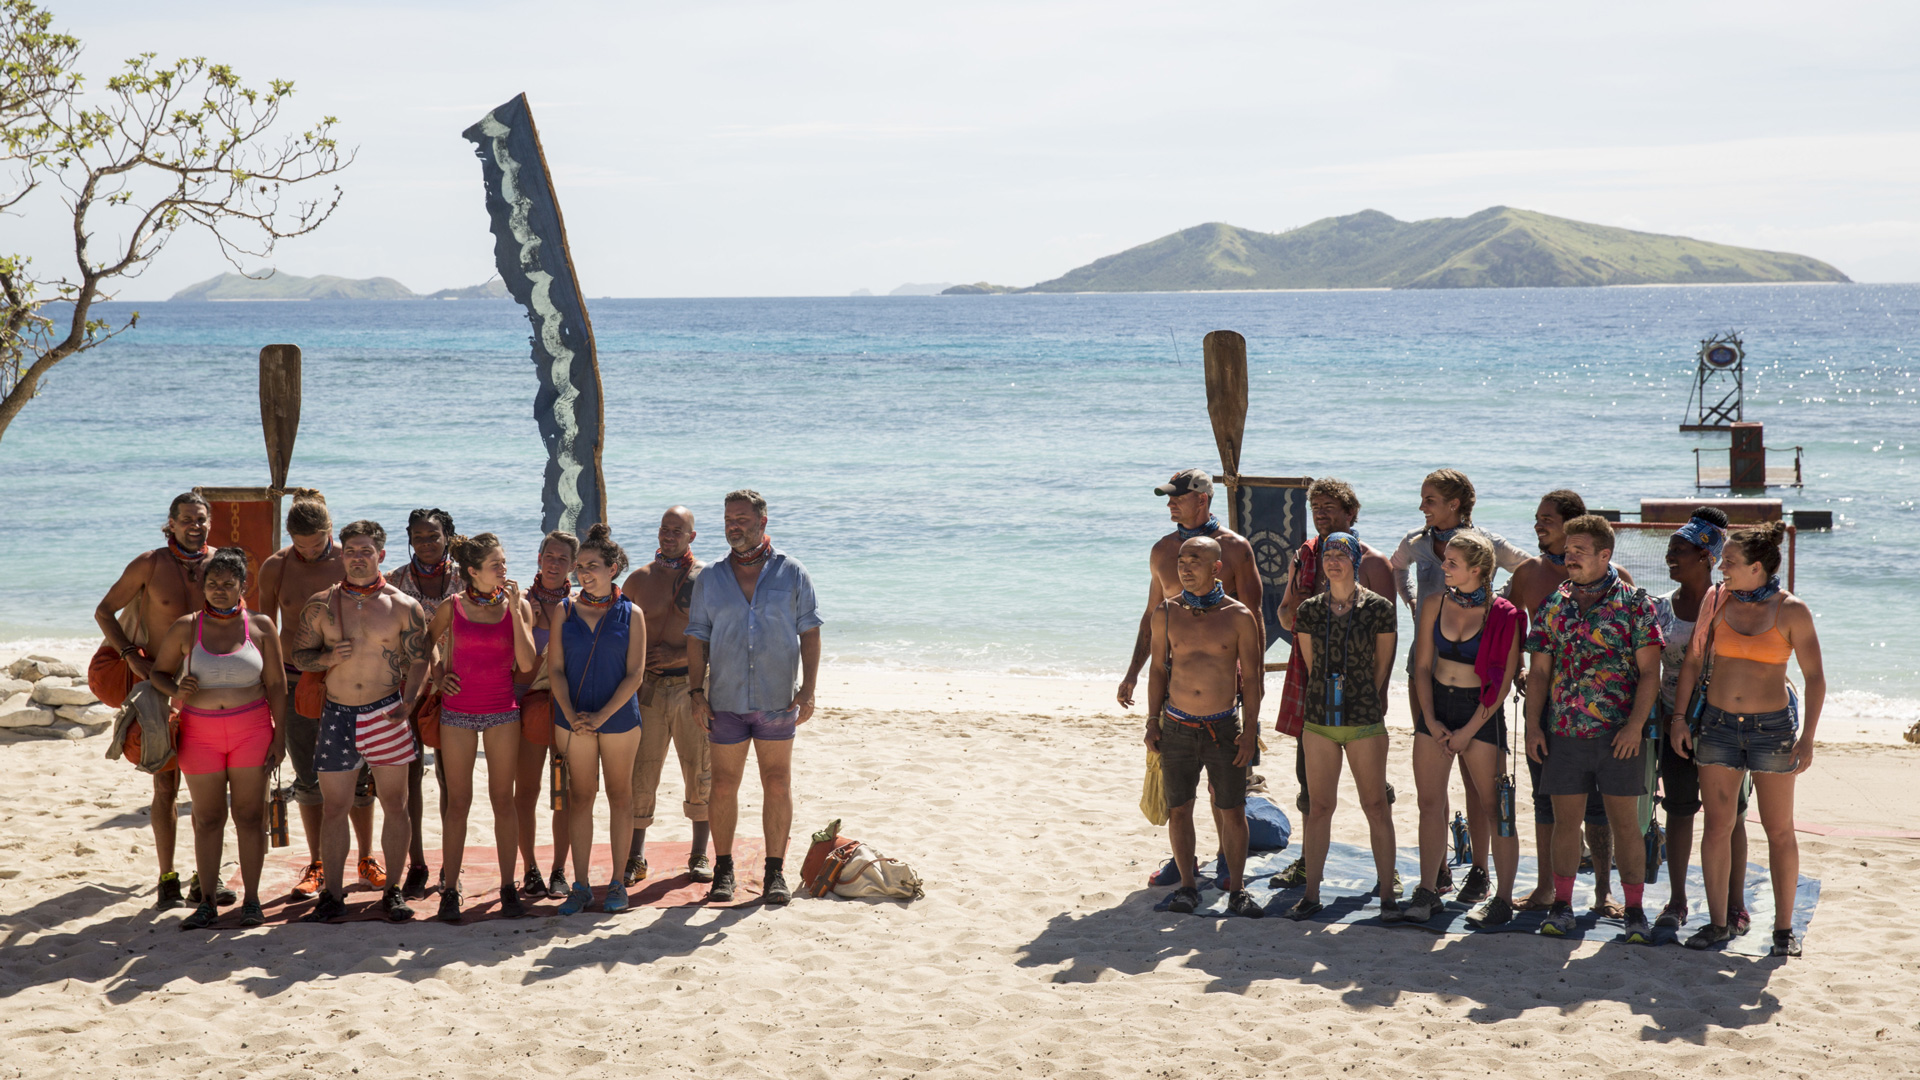 Which castaways make the boldest first impression and who will be the first one snuffed?